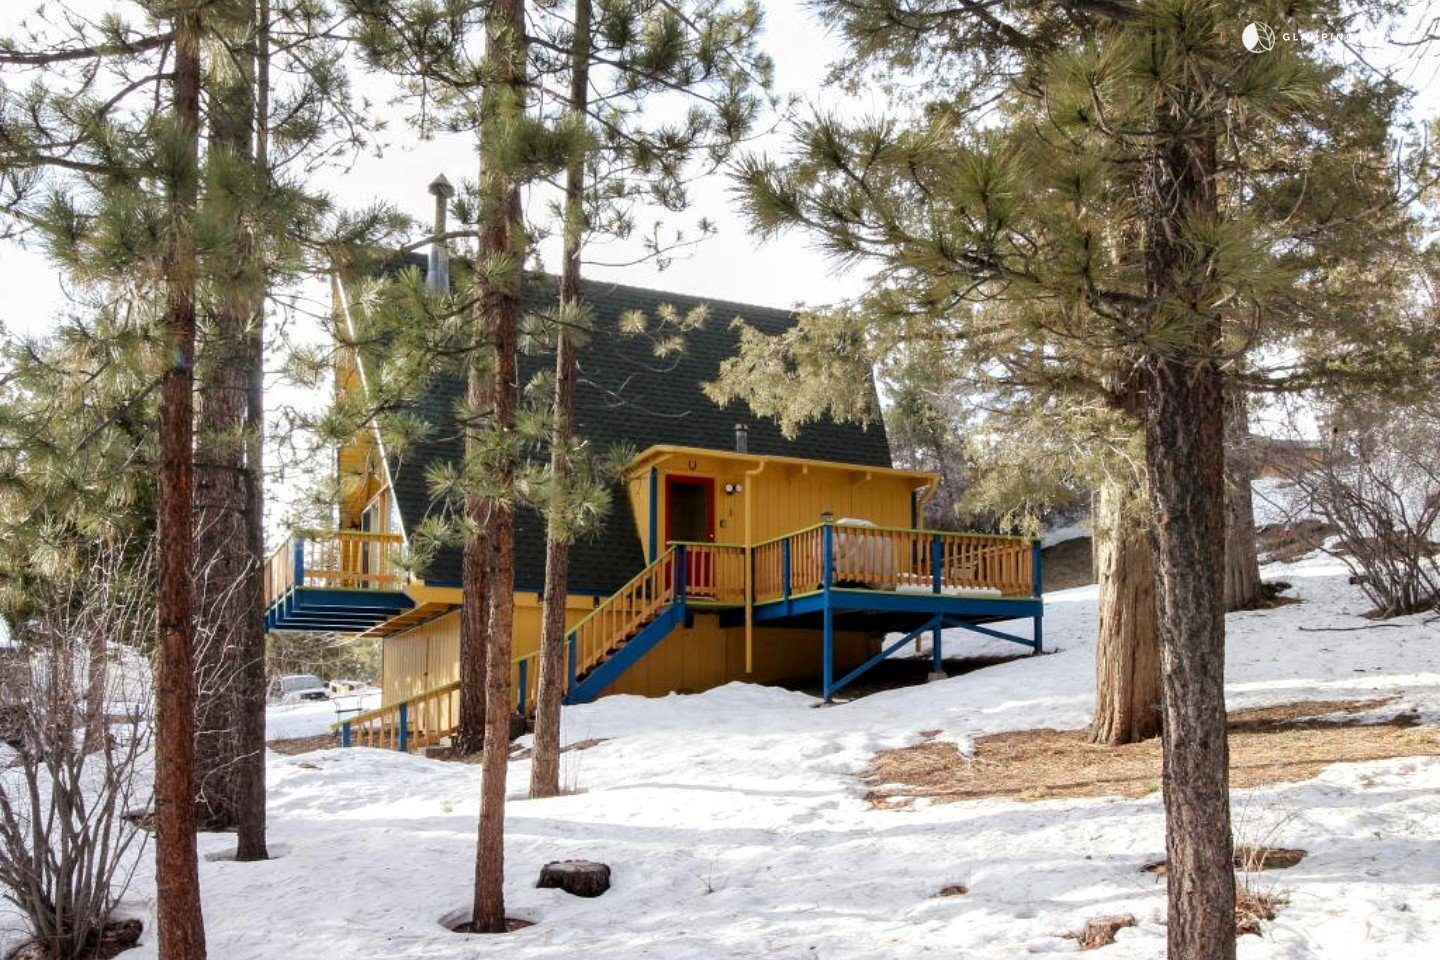 Family cabin getaway in big bear lake california for Big bear cabins california